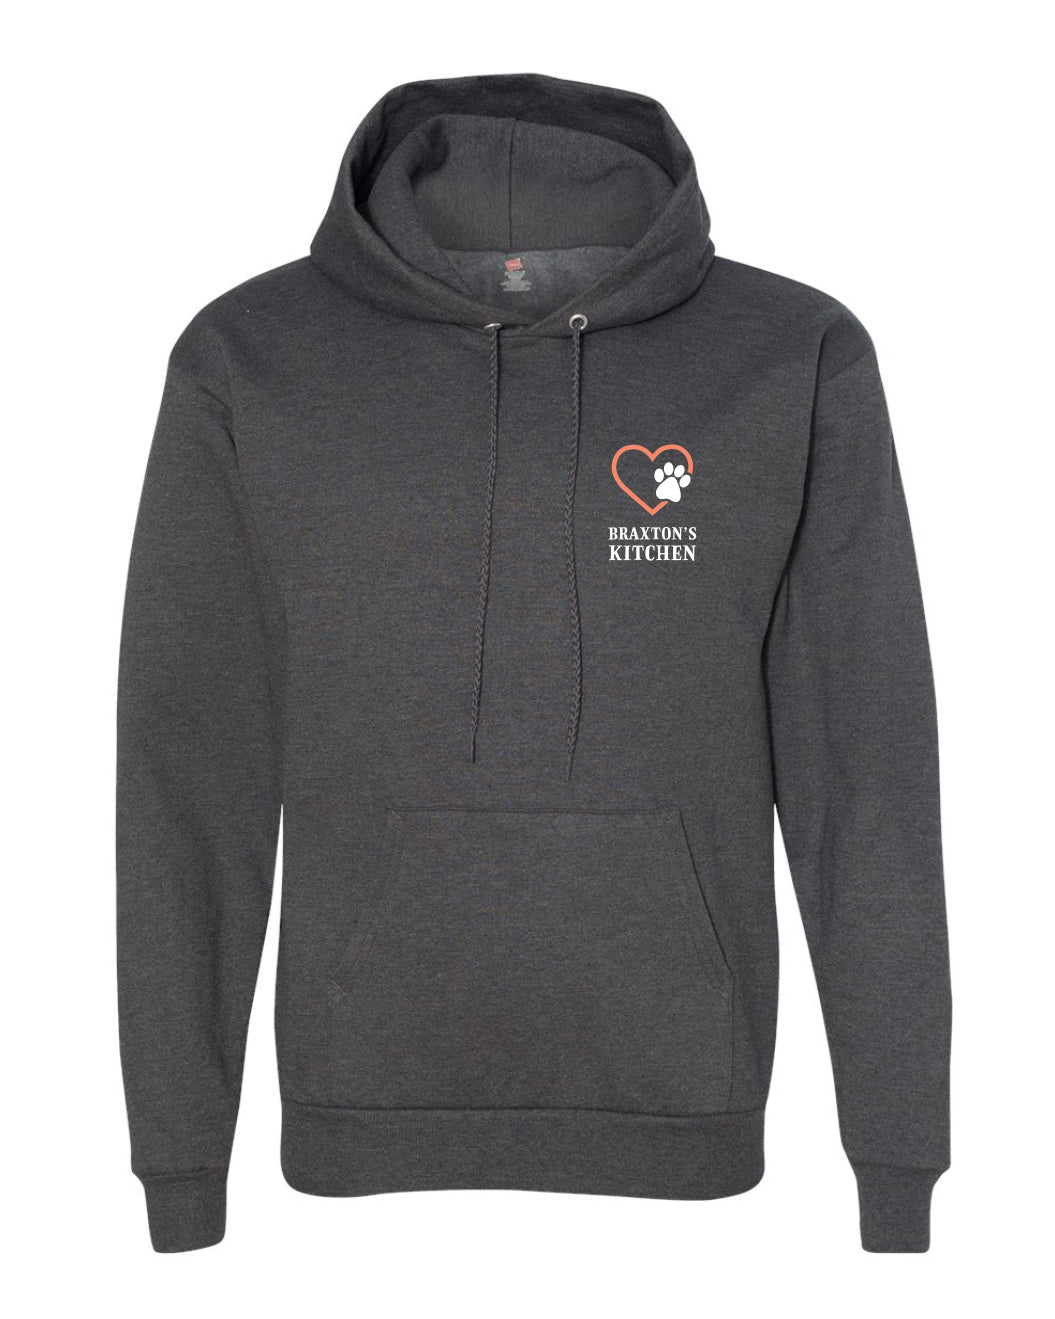 Pawsitive Hoodie - Charcoal Gray - Braxton's Kitchen